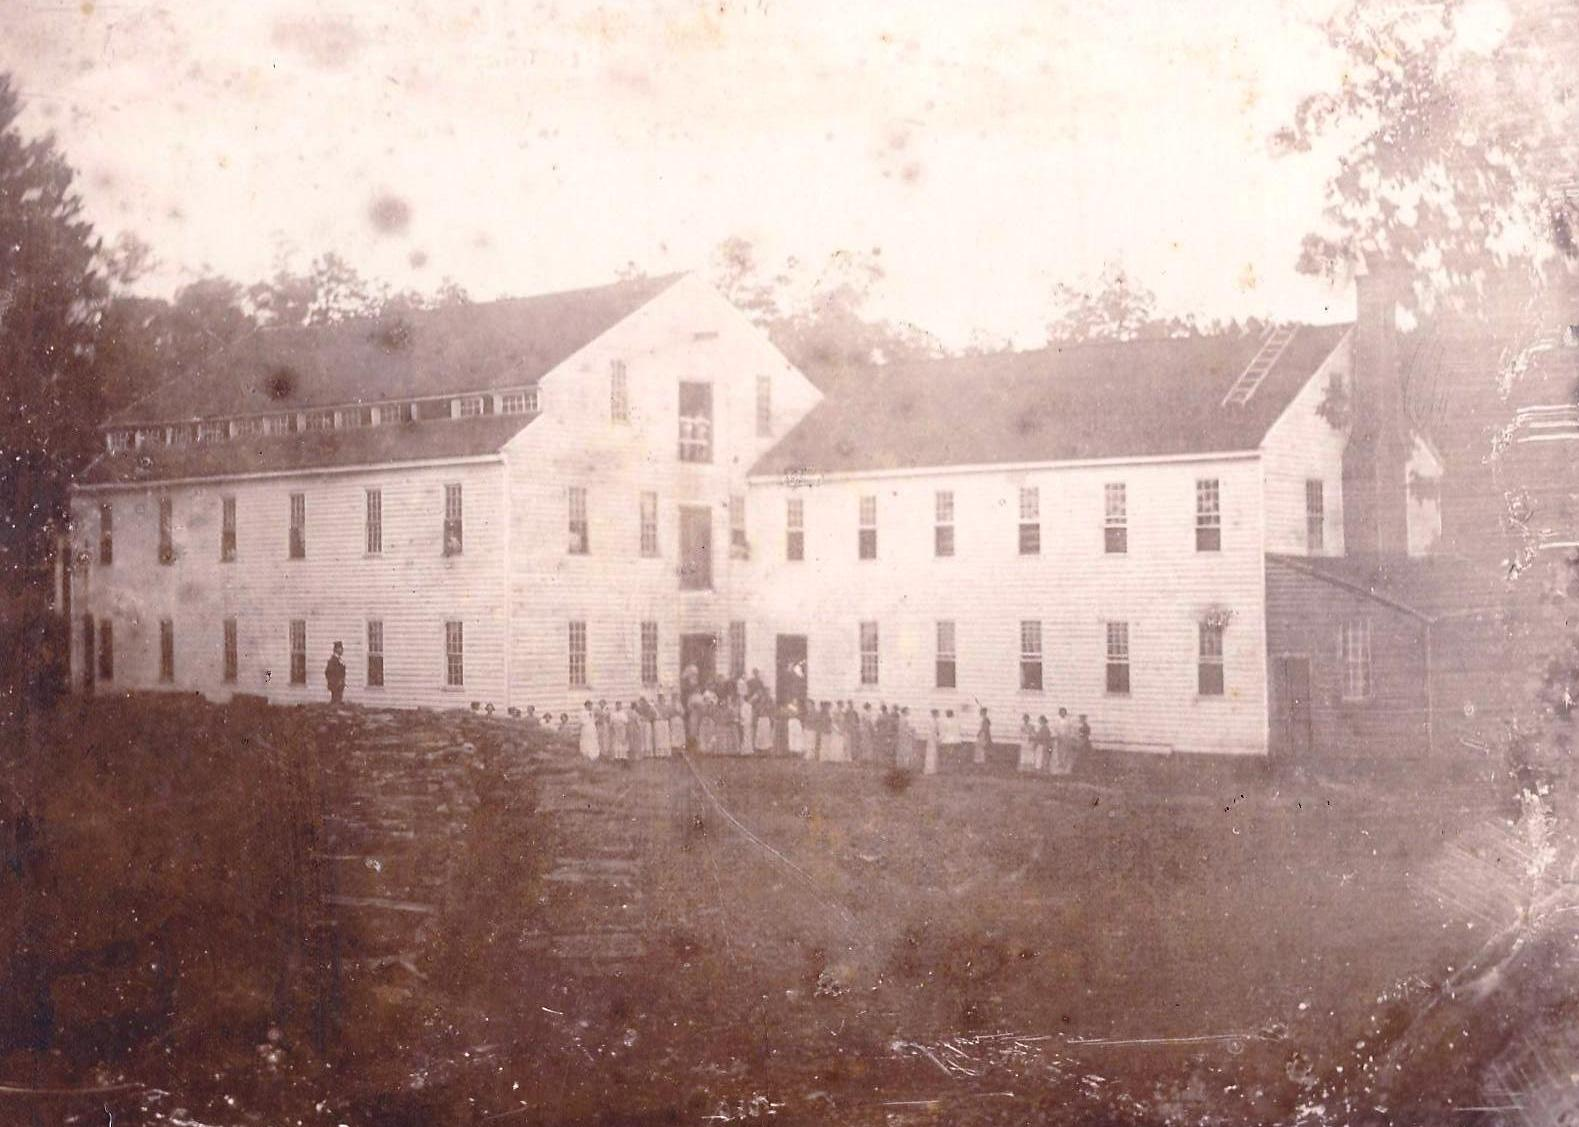 Photograph of Alamance Cotton Mill, as it appeared in 1837 shortly after construction.